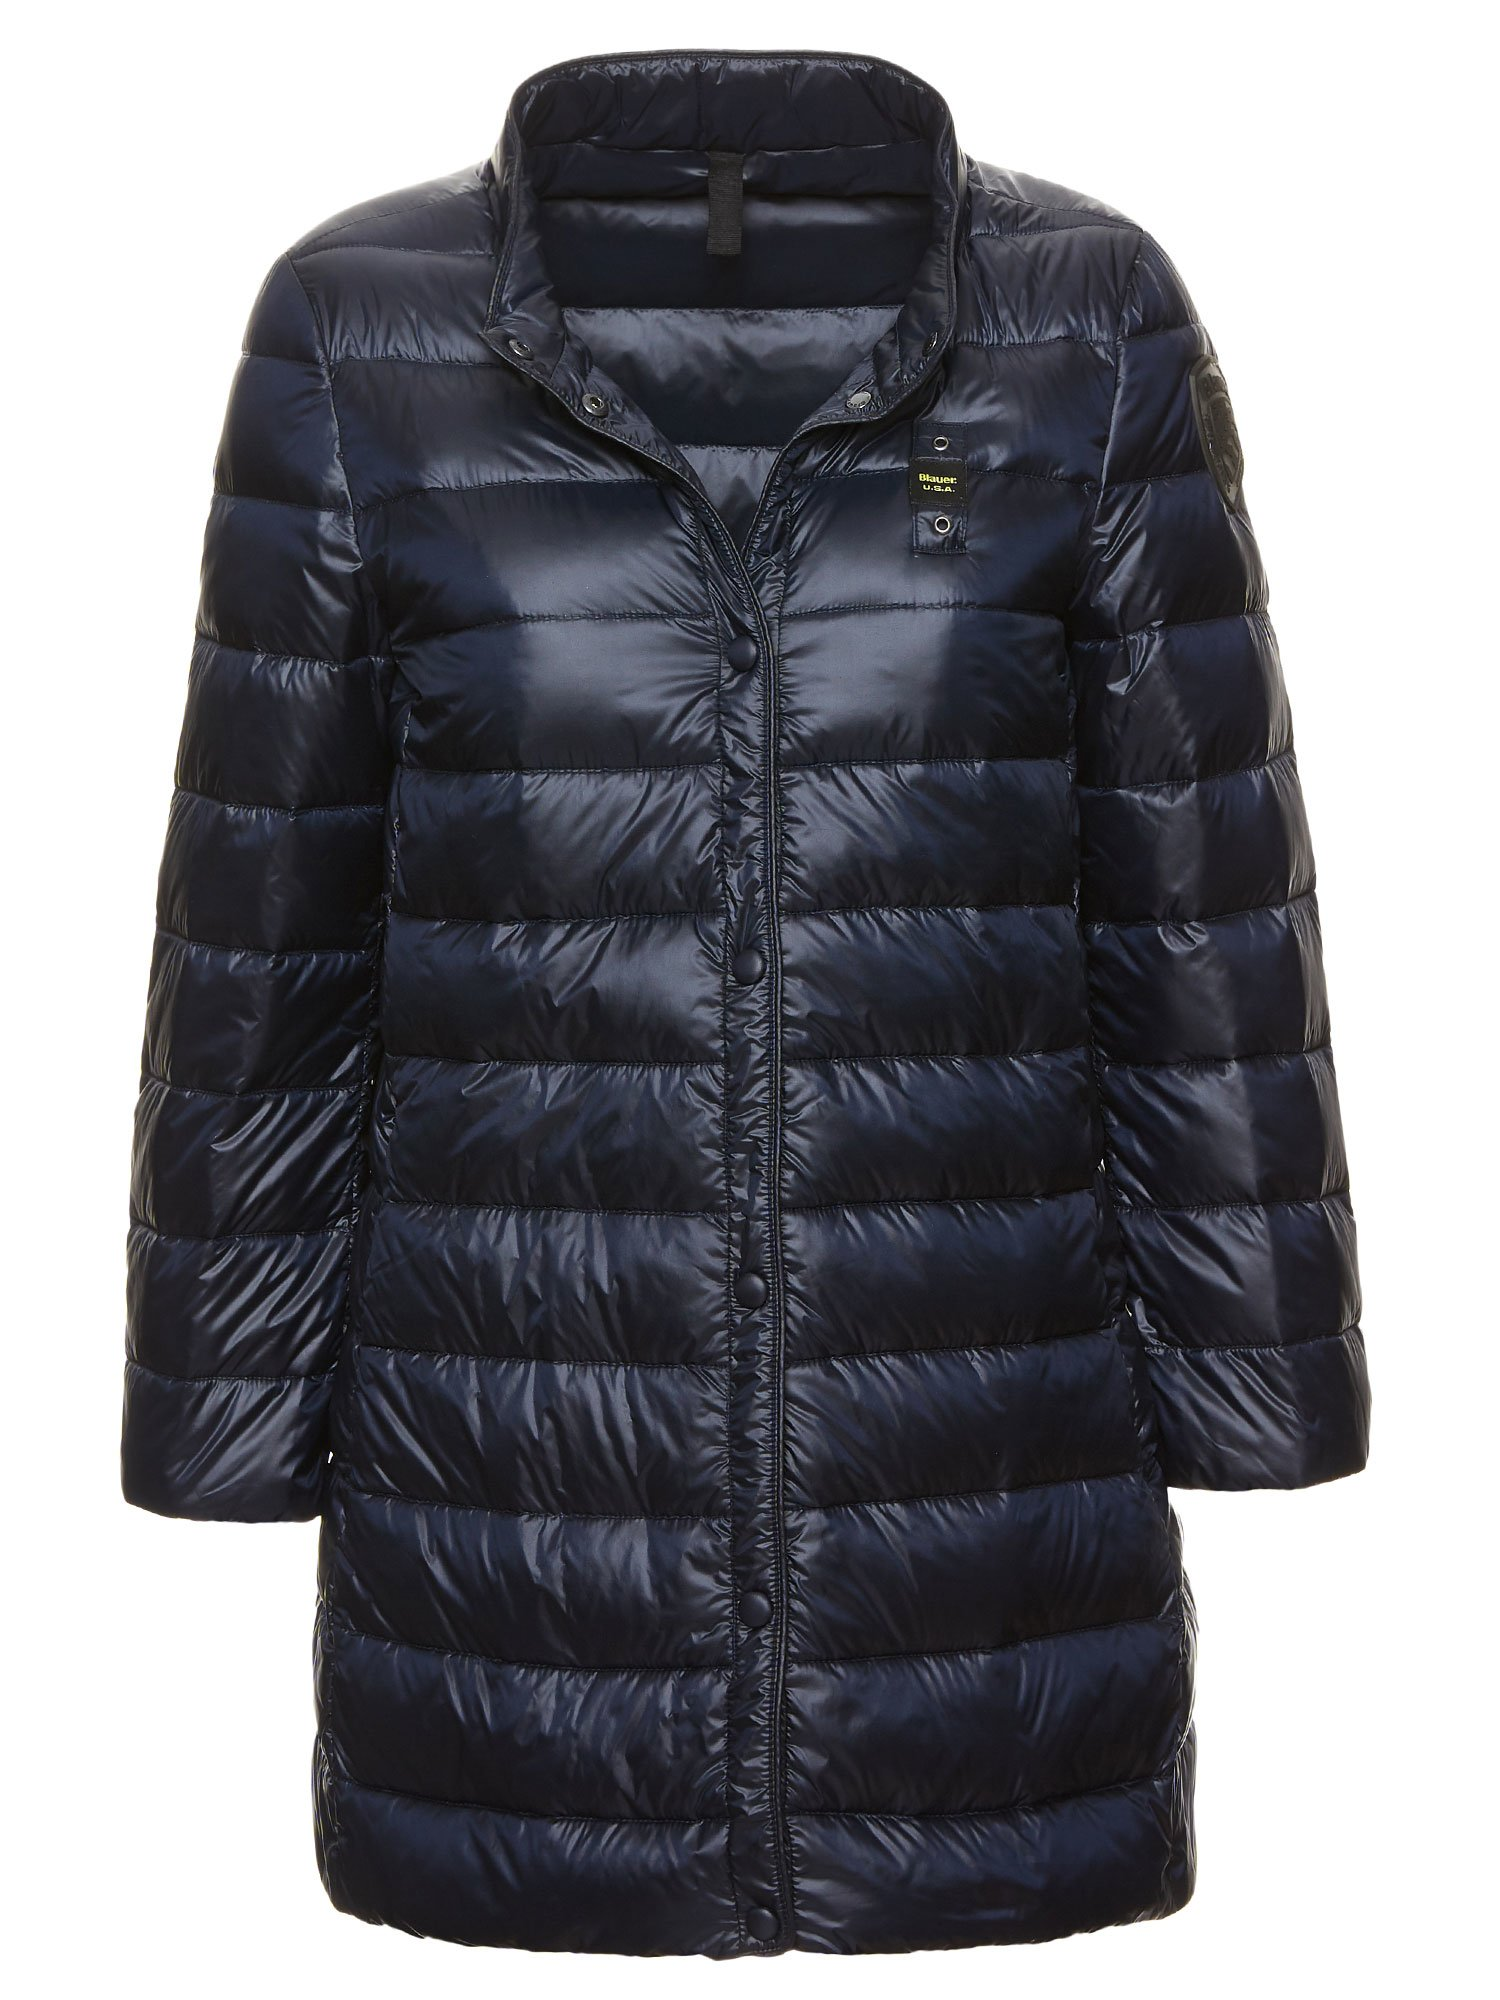 ADDISON LONG DOWN JACKET 100 GRAMS - Blauer